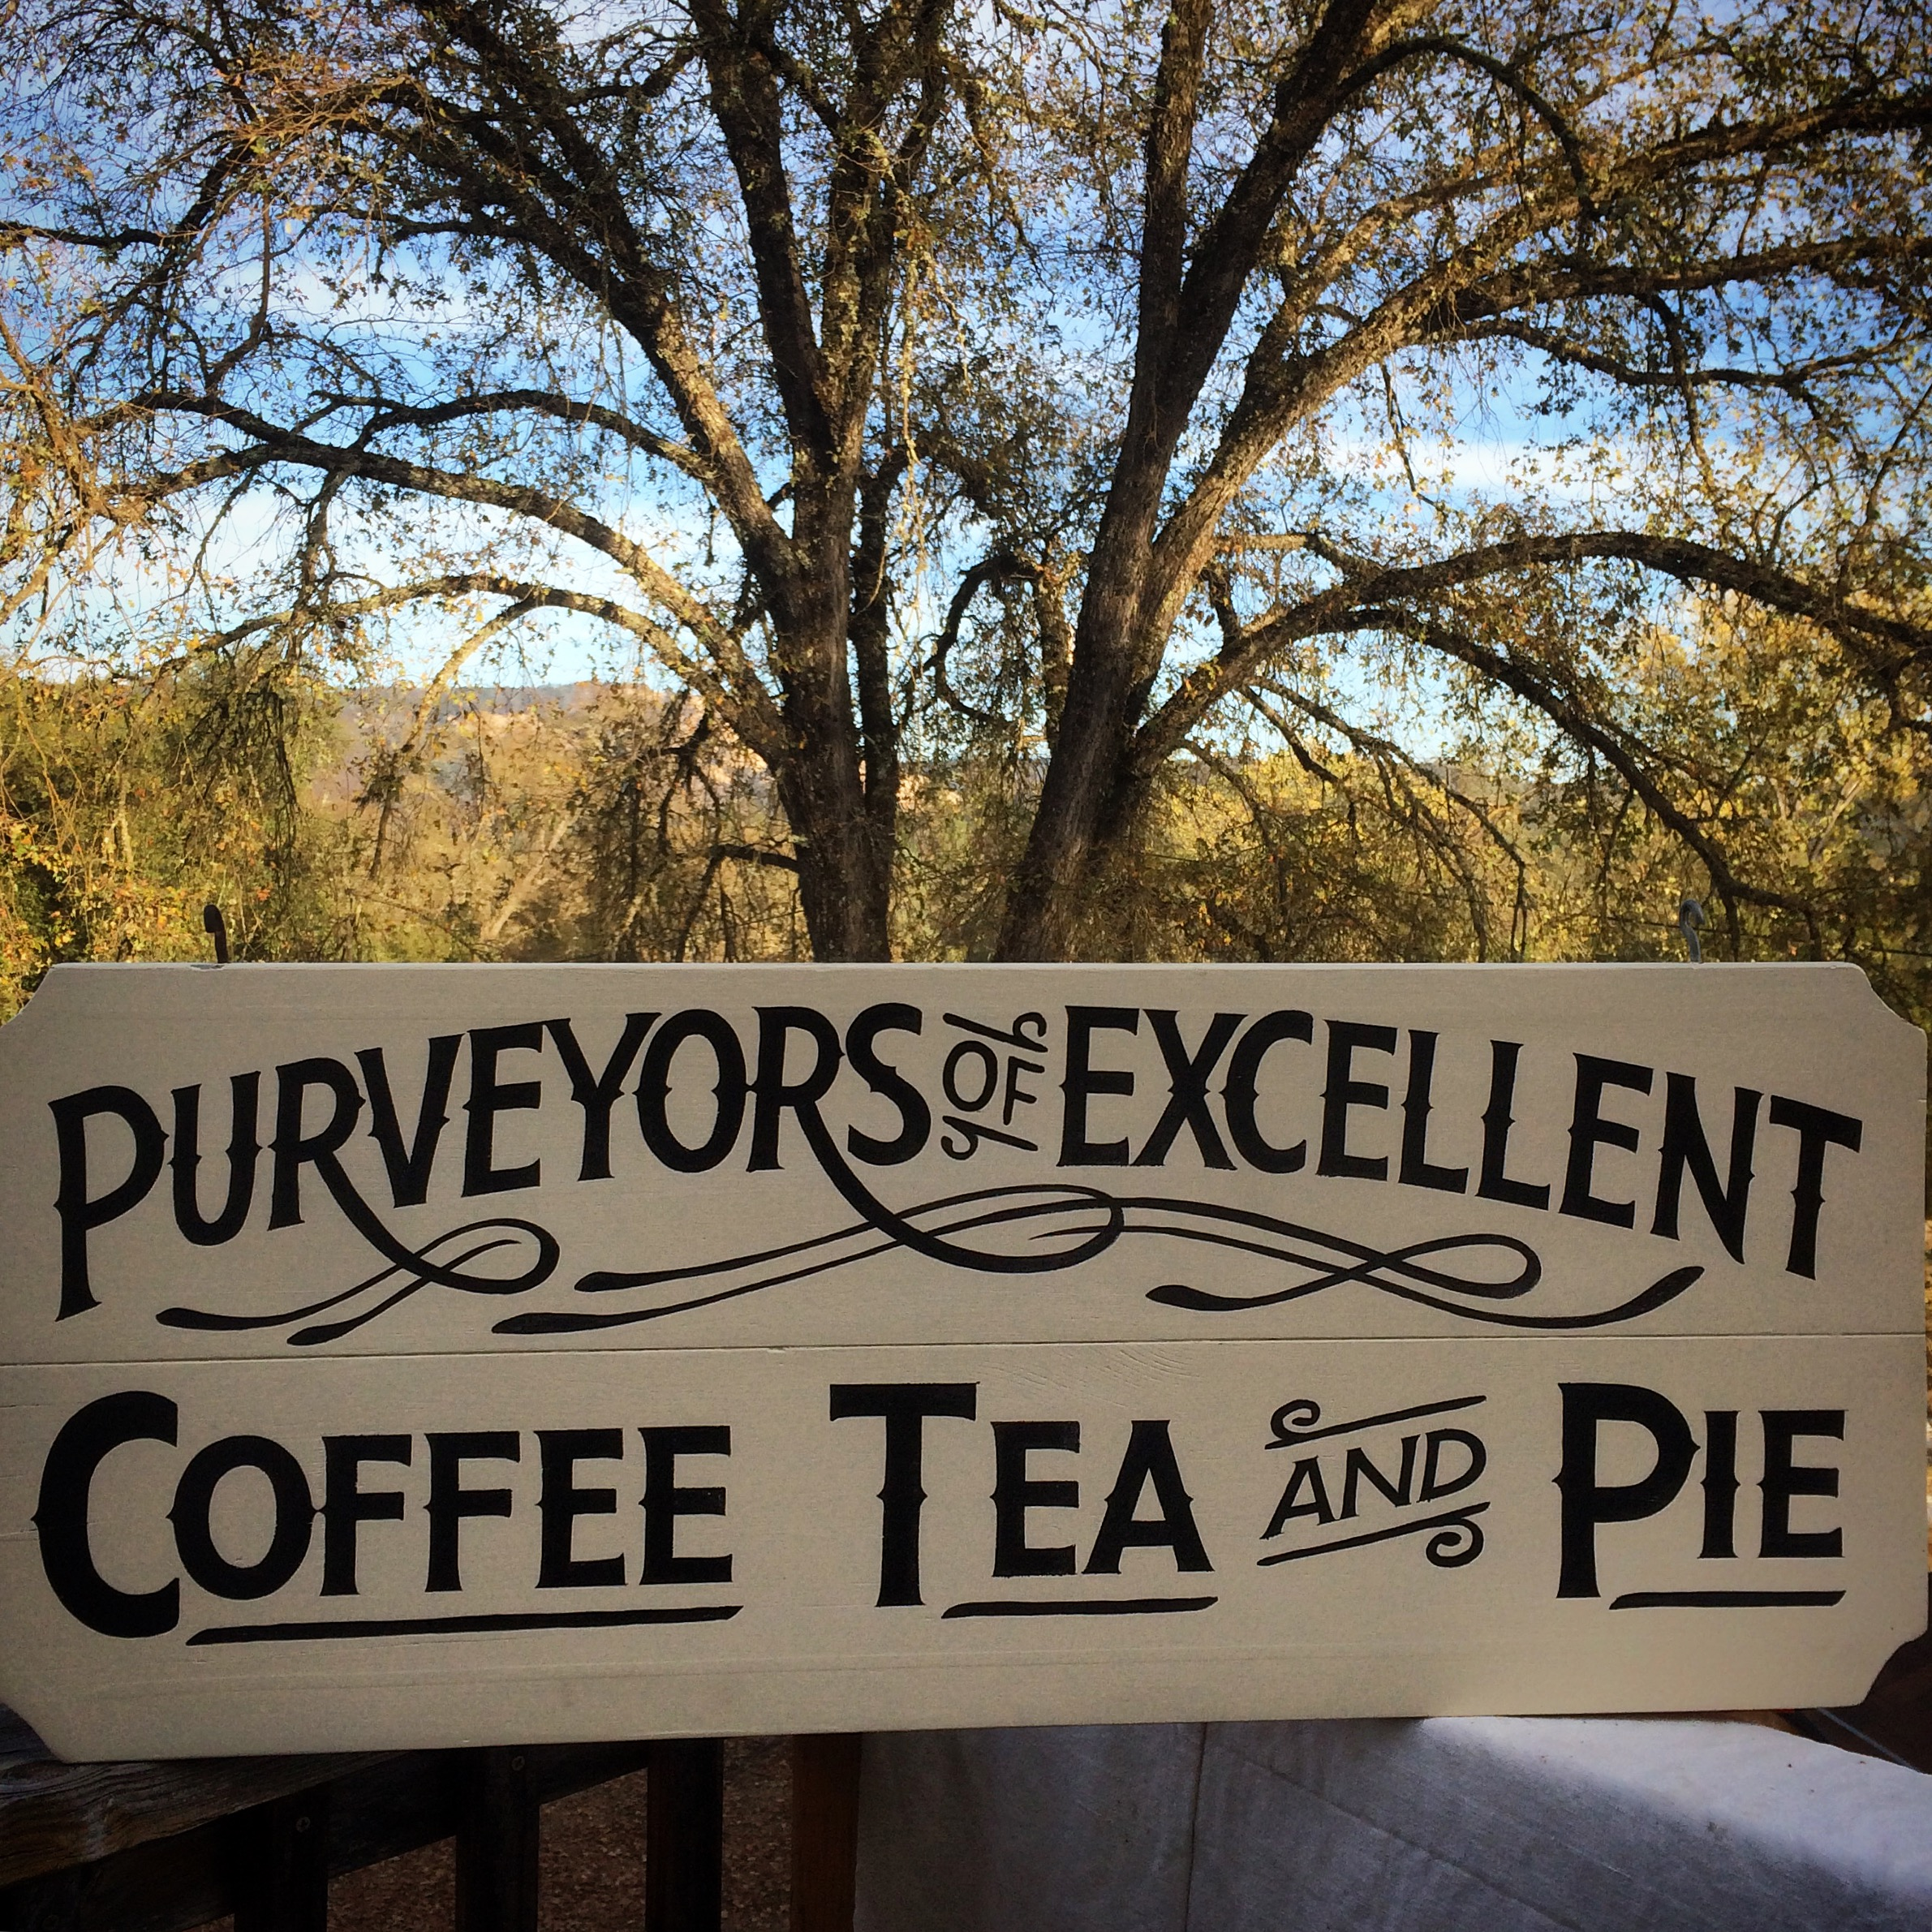 Coffee, Tea & Pie!